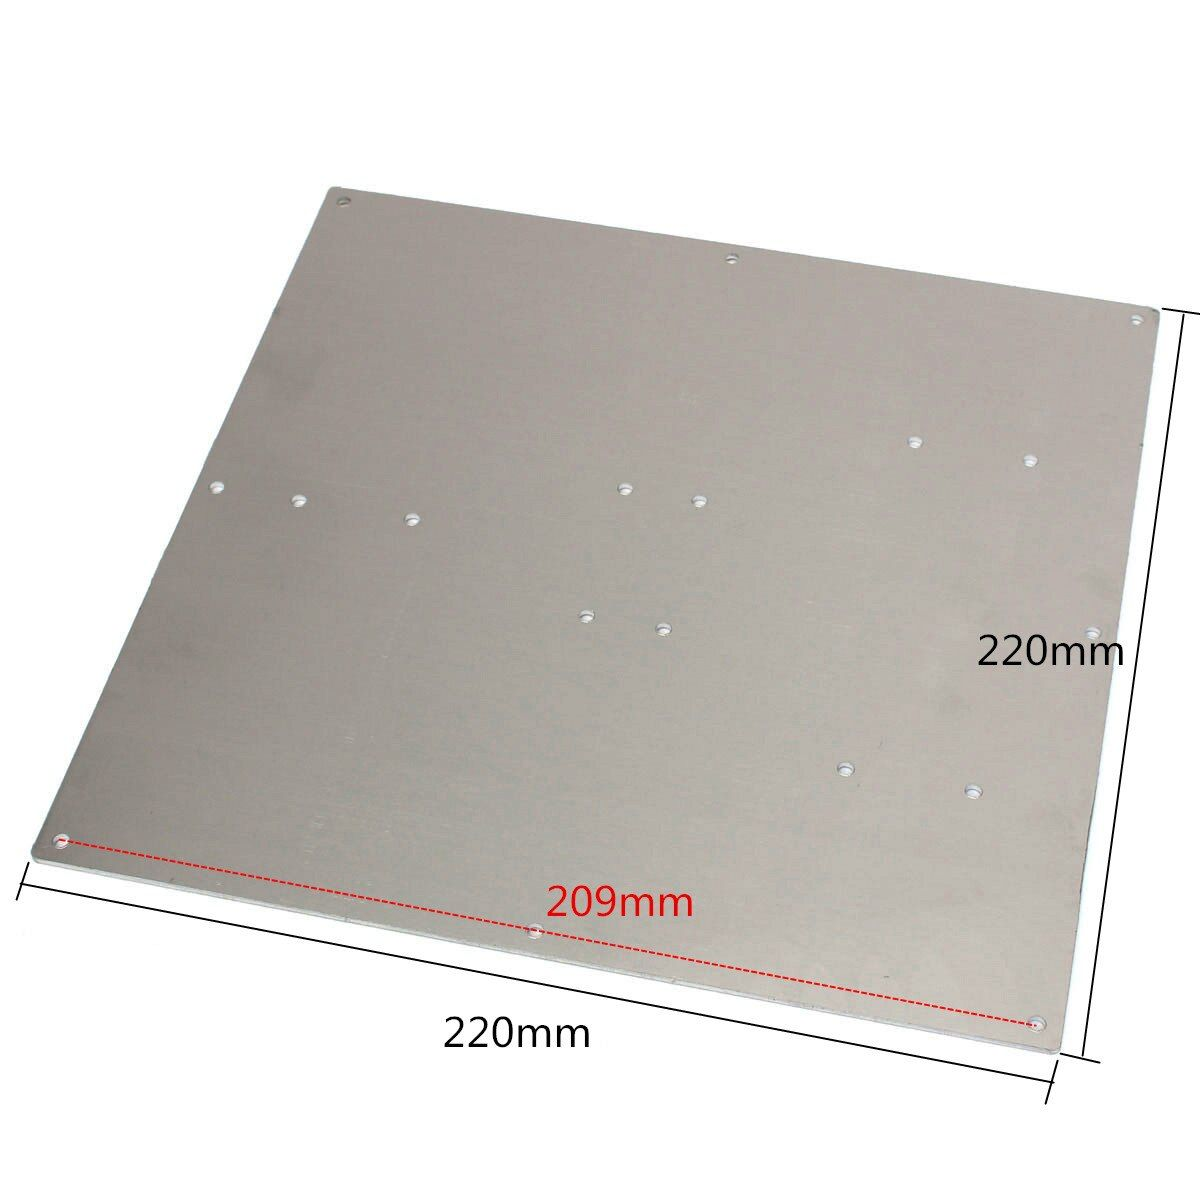 Anodized Aluminum Heated Bed Buld Plate For 3D Printer For RepRap